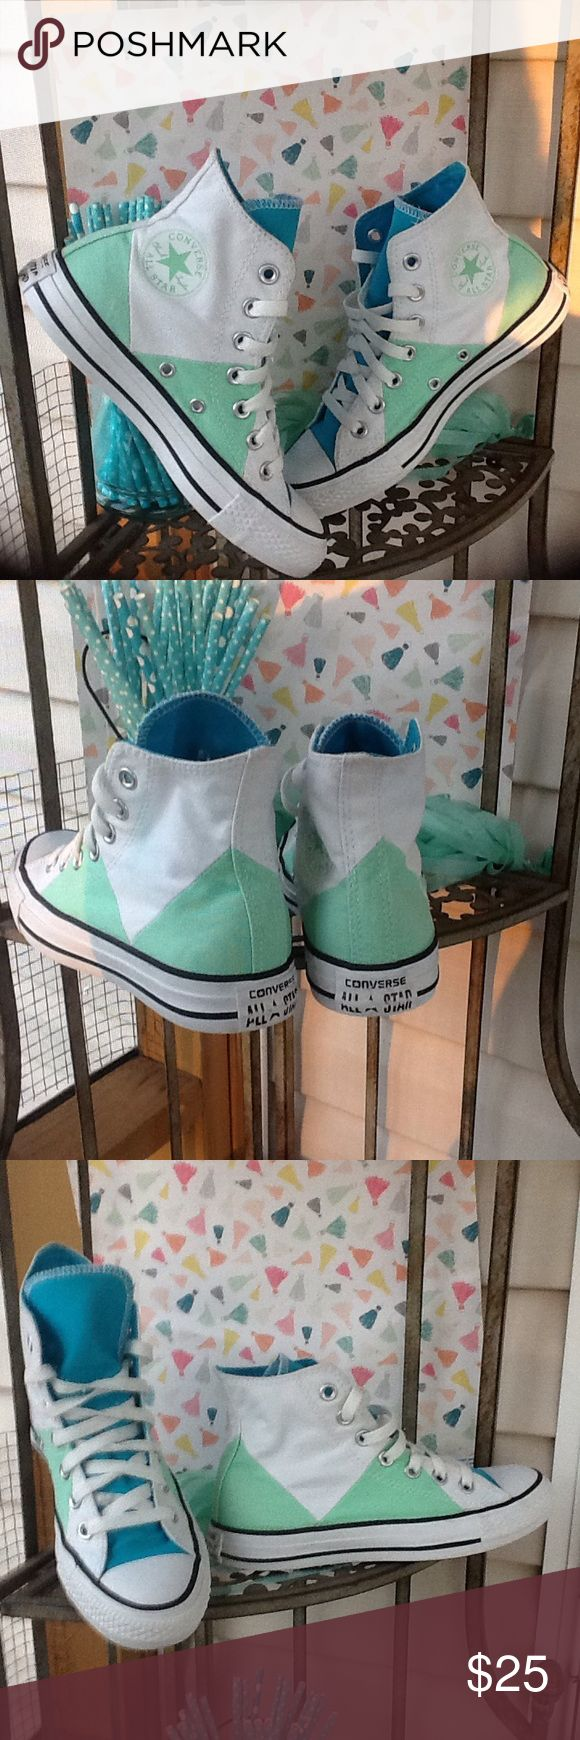 Converse All Star If I could get my big feet in these!! This mama would so be Rockin these instead of selling!!They are so stinkin adorable.white and mint green w/turquoise tong and lining.these are not the unisex that ladies go up in size,they are marked women's sz.5,so they are a true ladies 5.great condition.  Bundle & Save 20%!!! Converse Shoes Sneakers